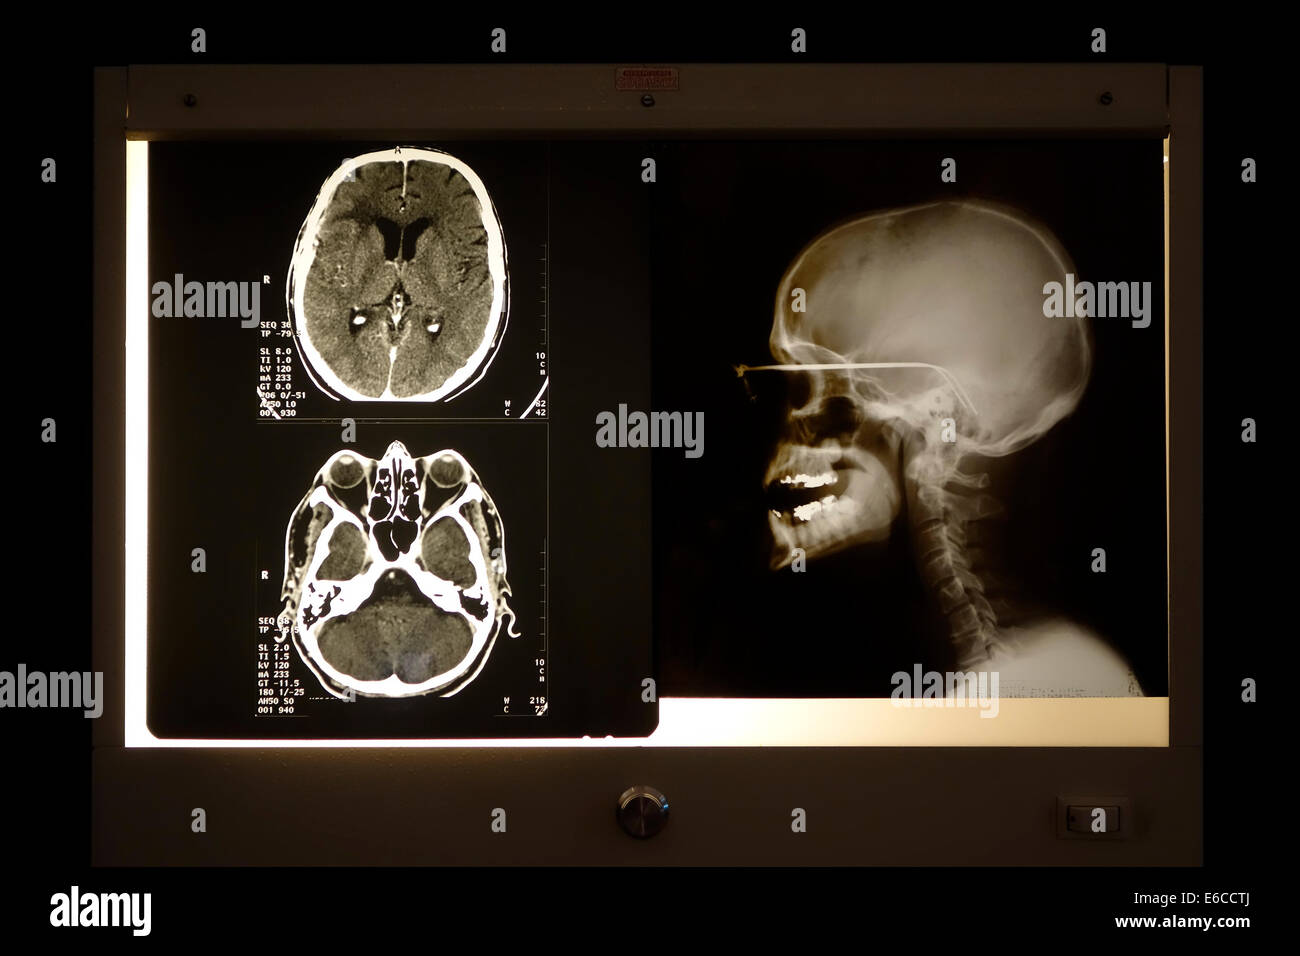 X-ray image of skull and cranial computed tomography scan viewed on light box - Stock Image